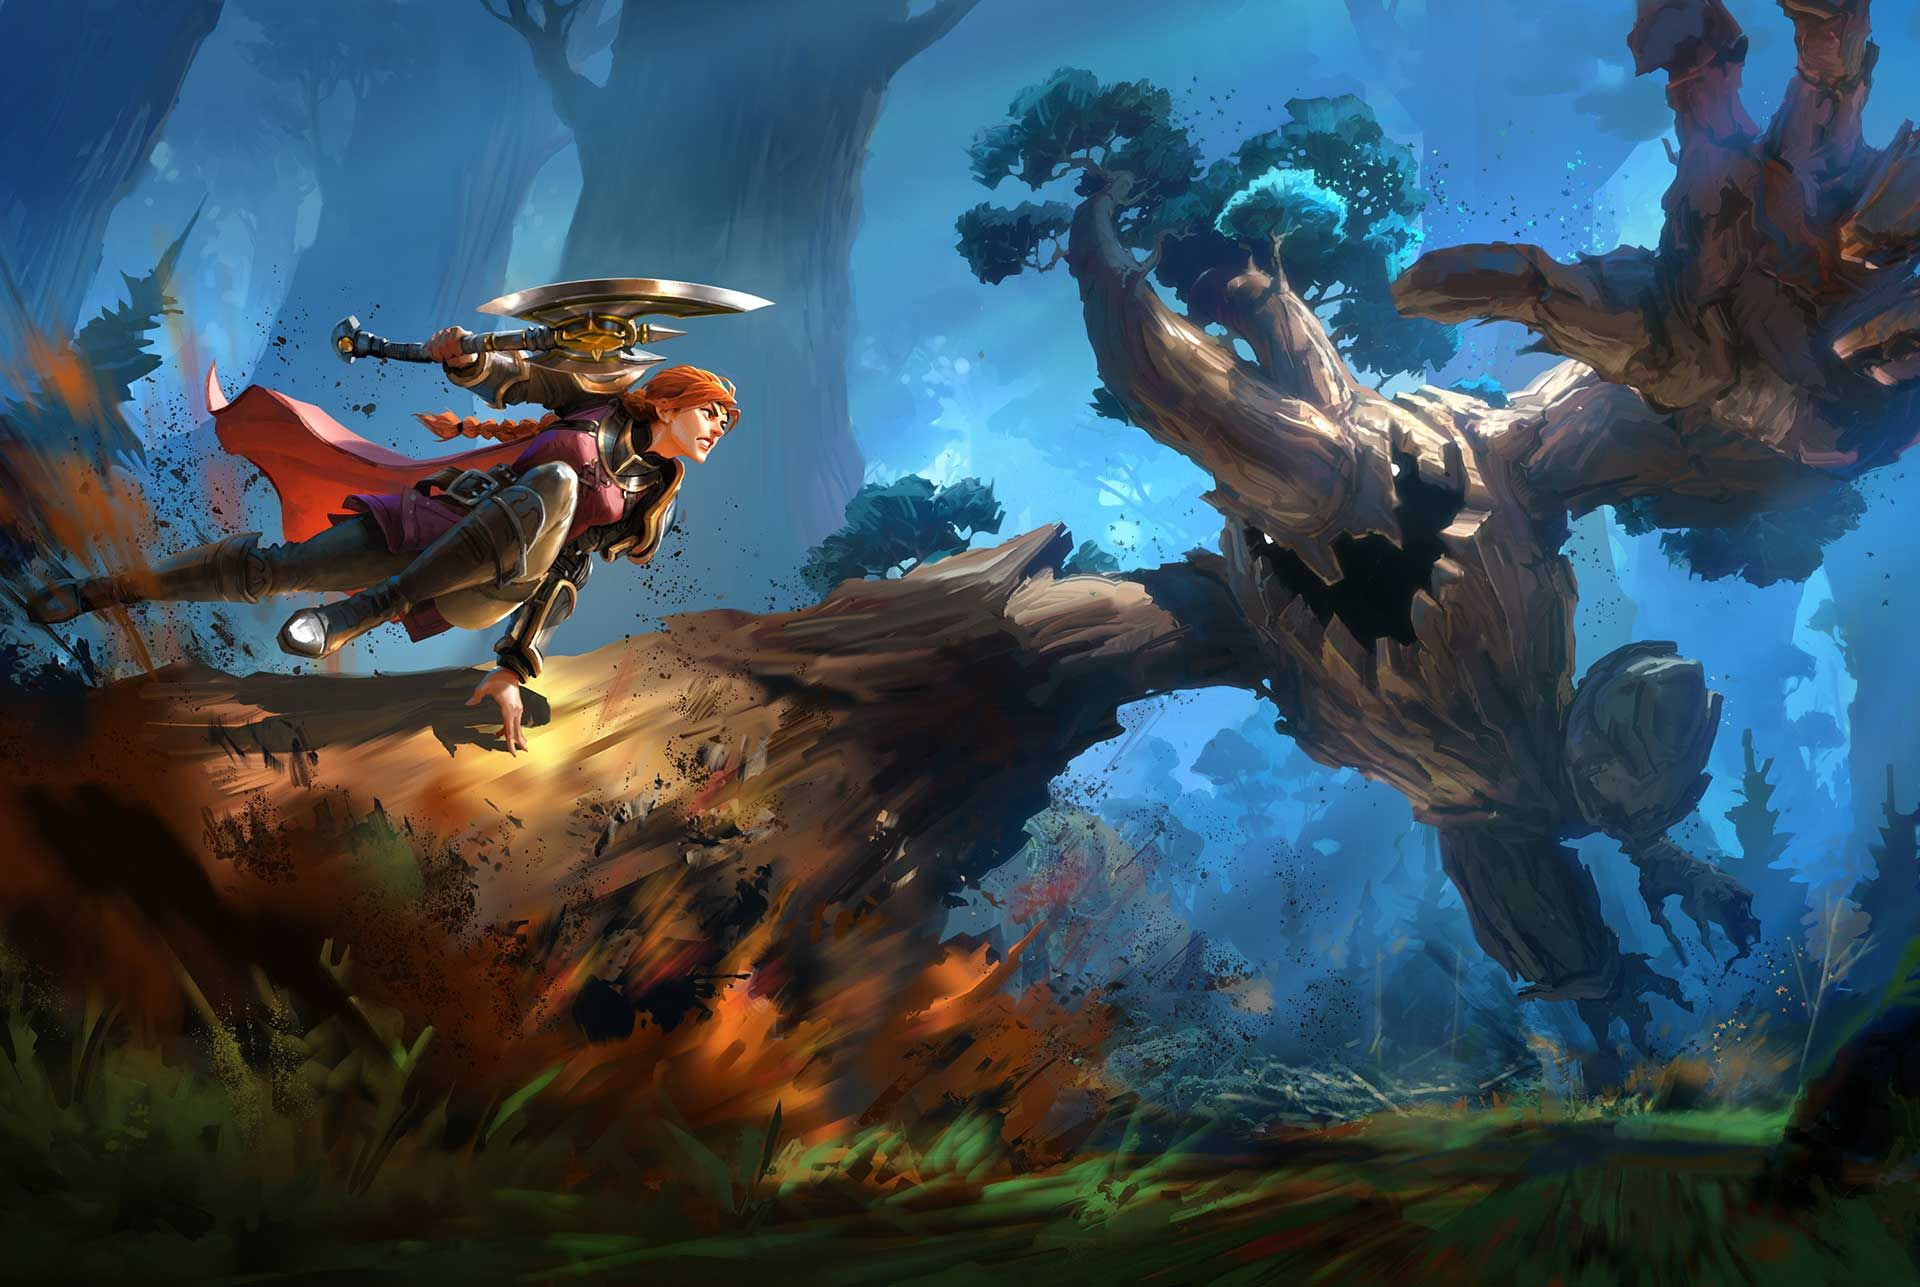 Explore the new Sandbox MMORPG and join over 250.000